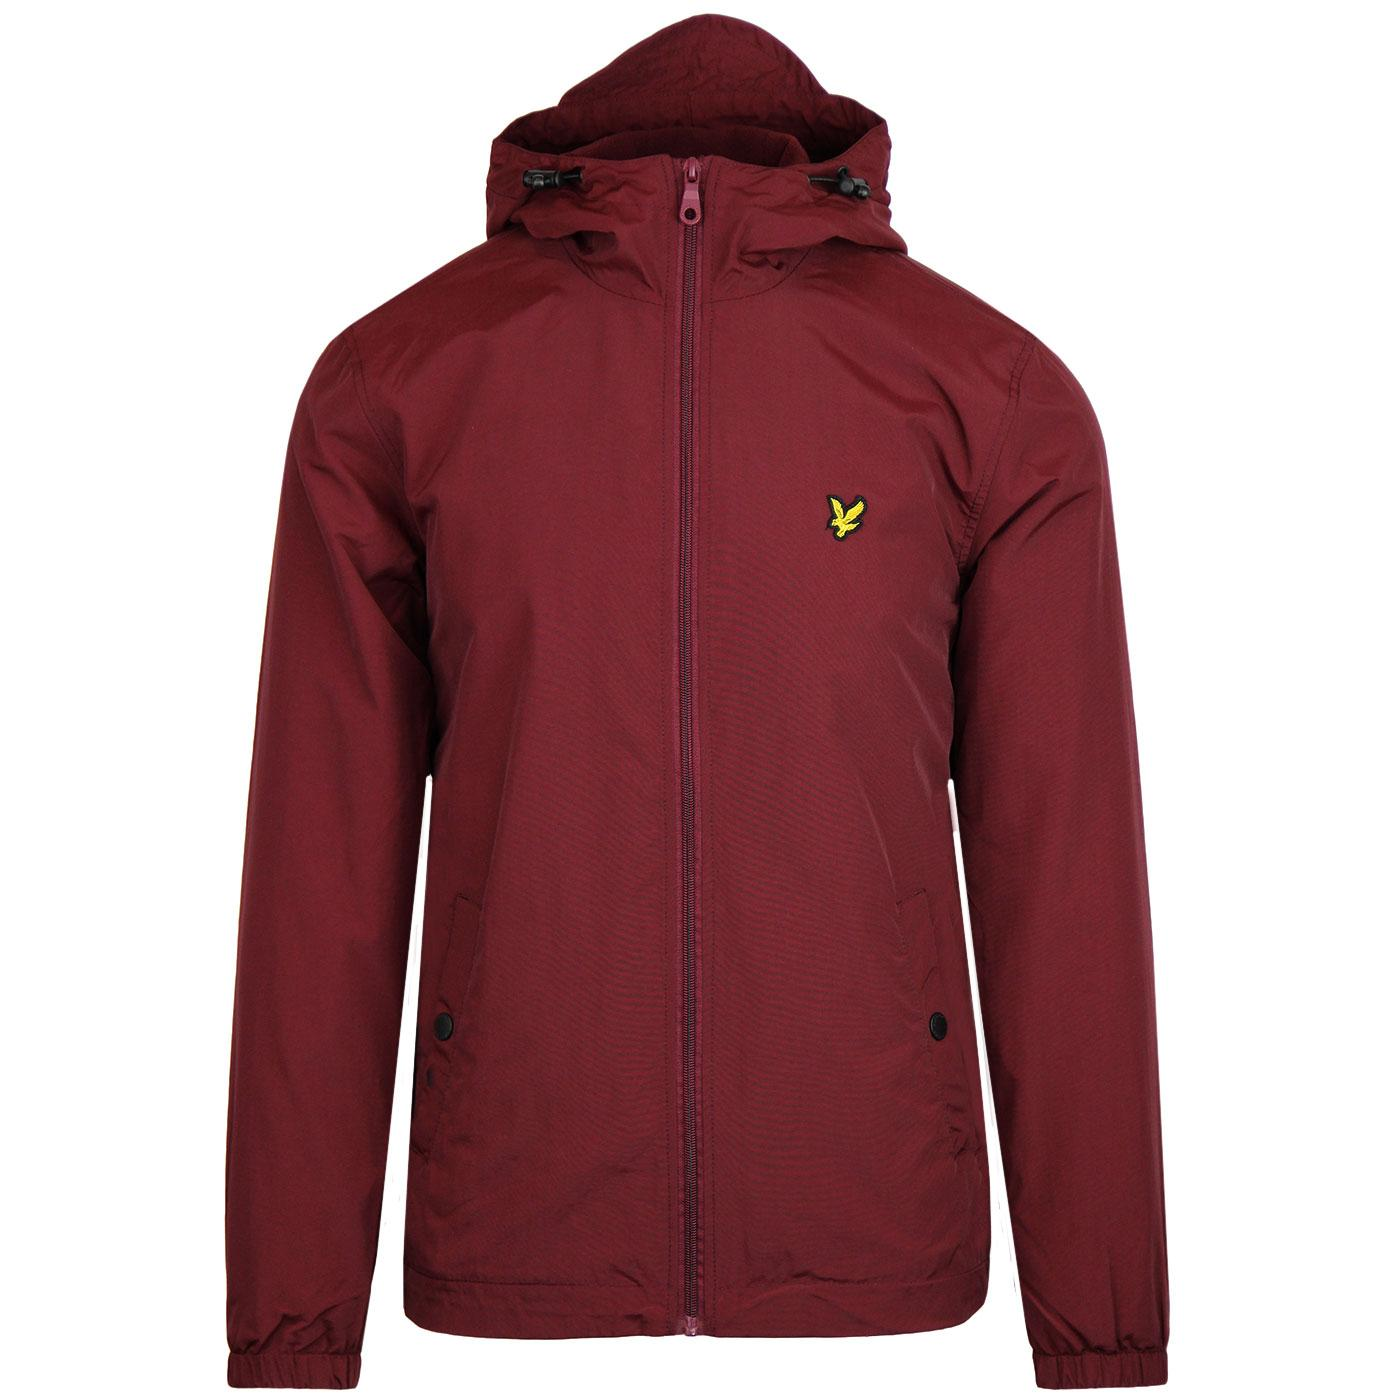 LYLE & SCOTT Retro Microfleece Jacket (Claret Jug)